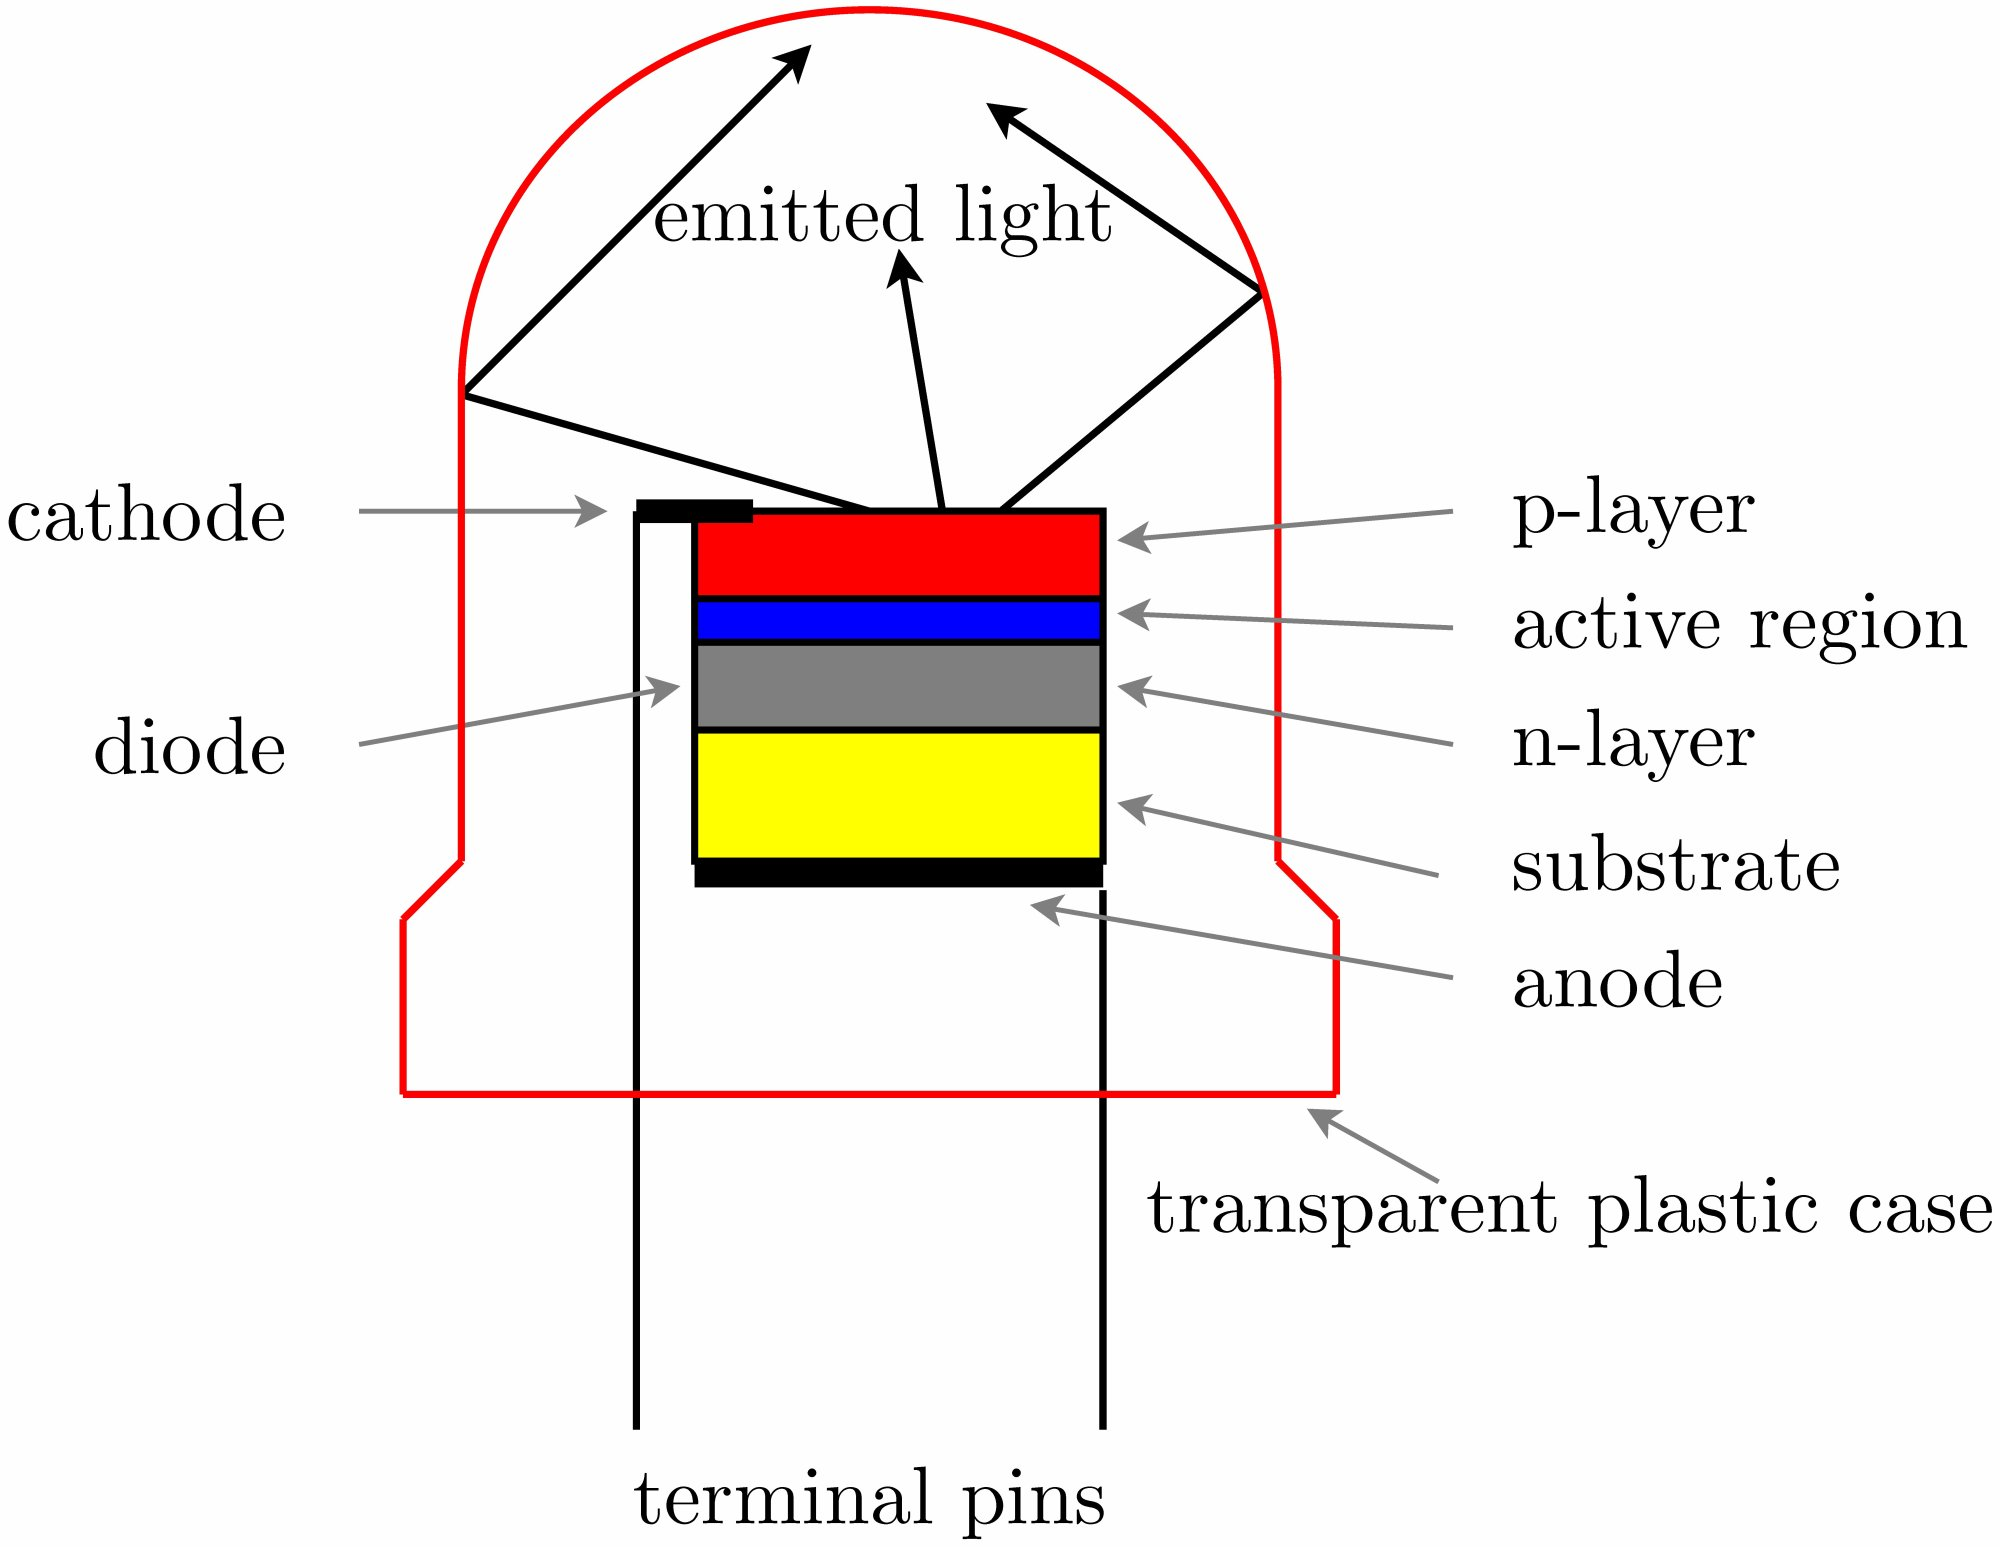 hight resolution of file led device jpg